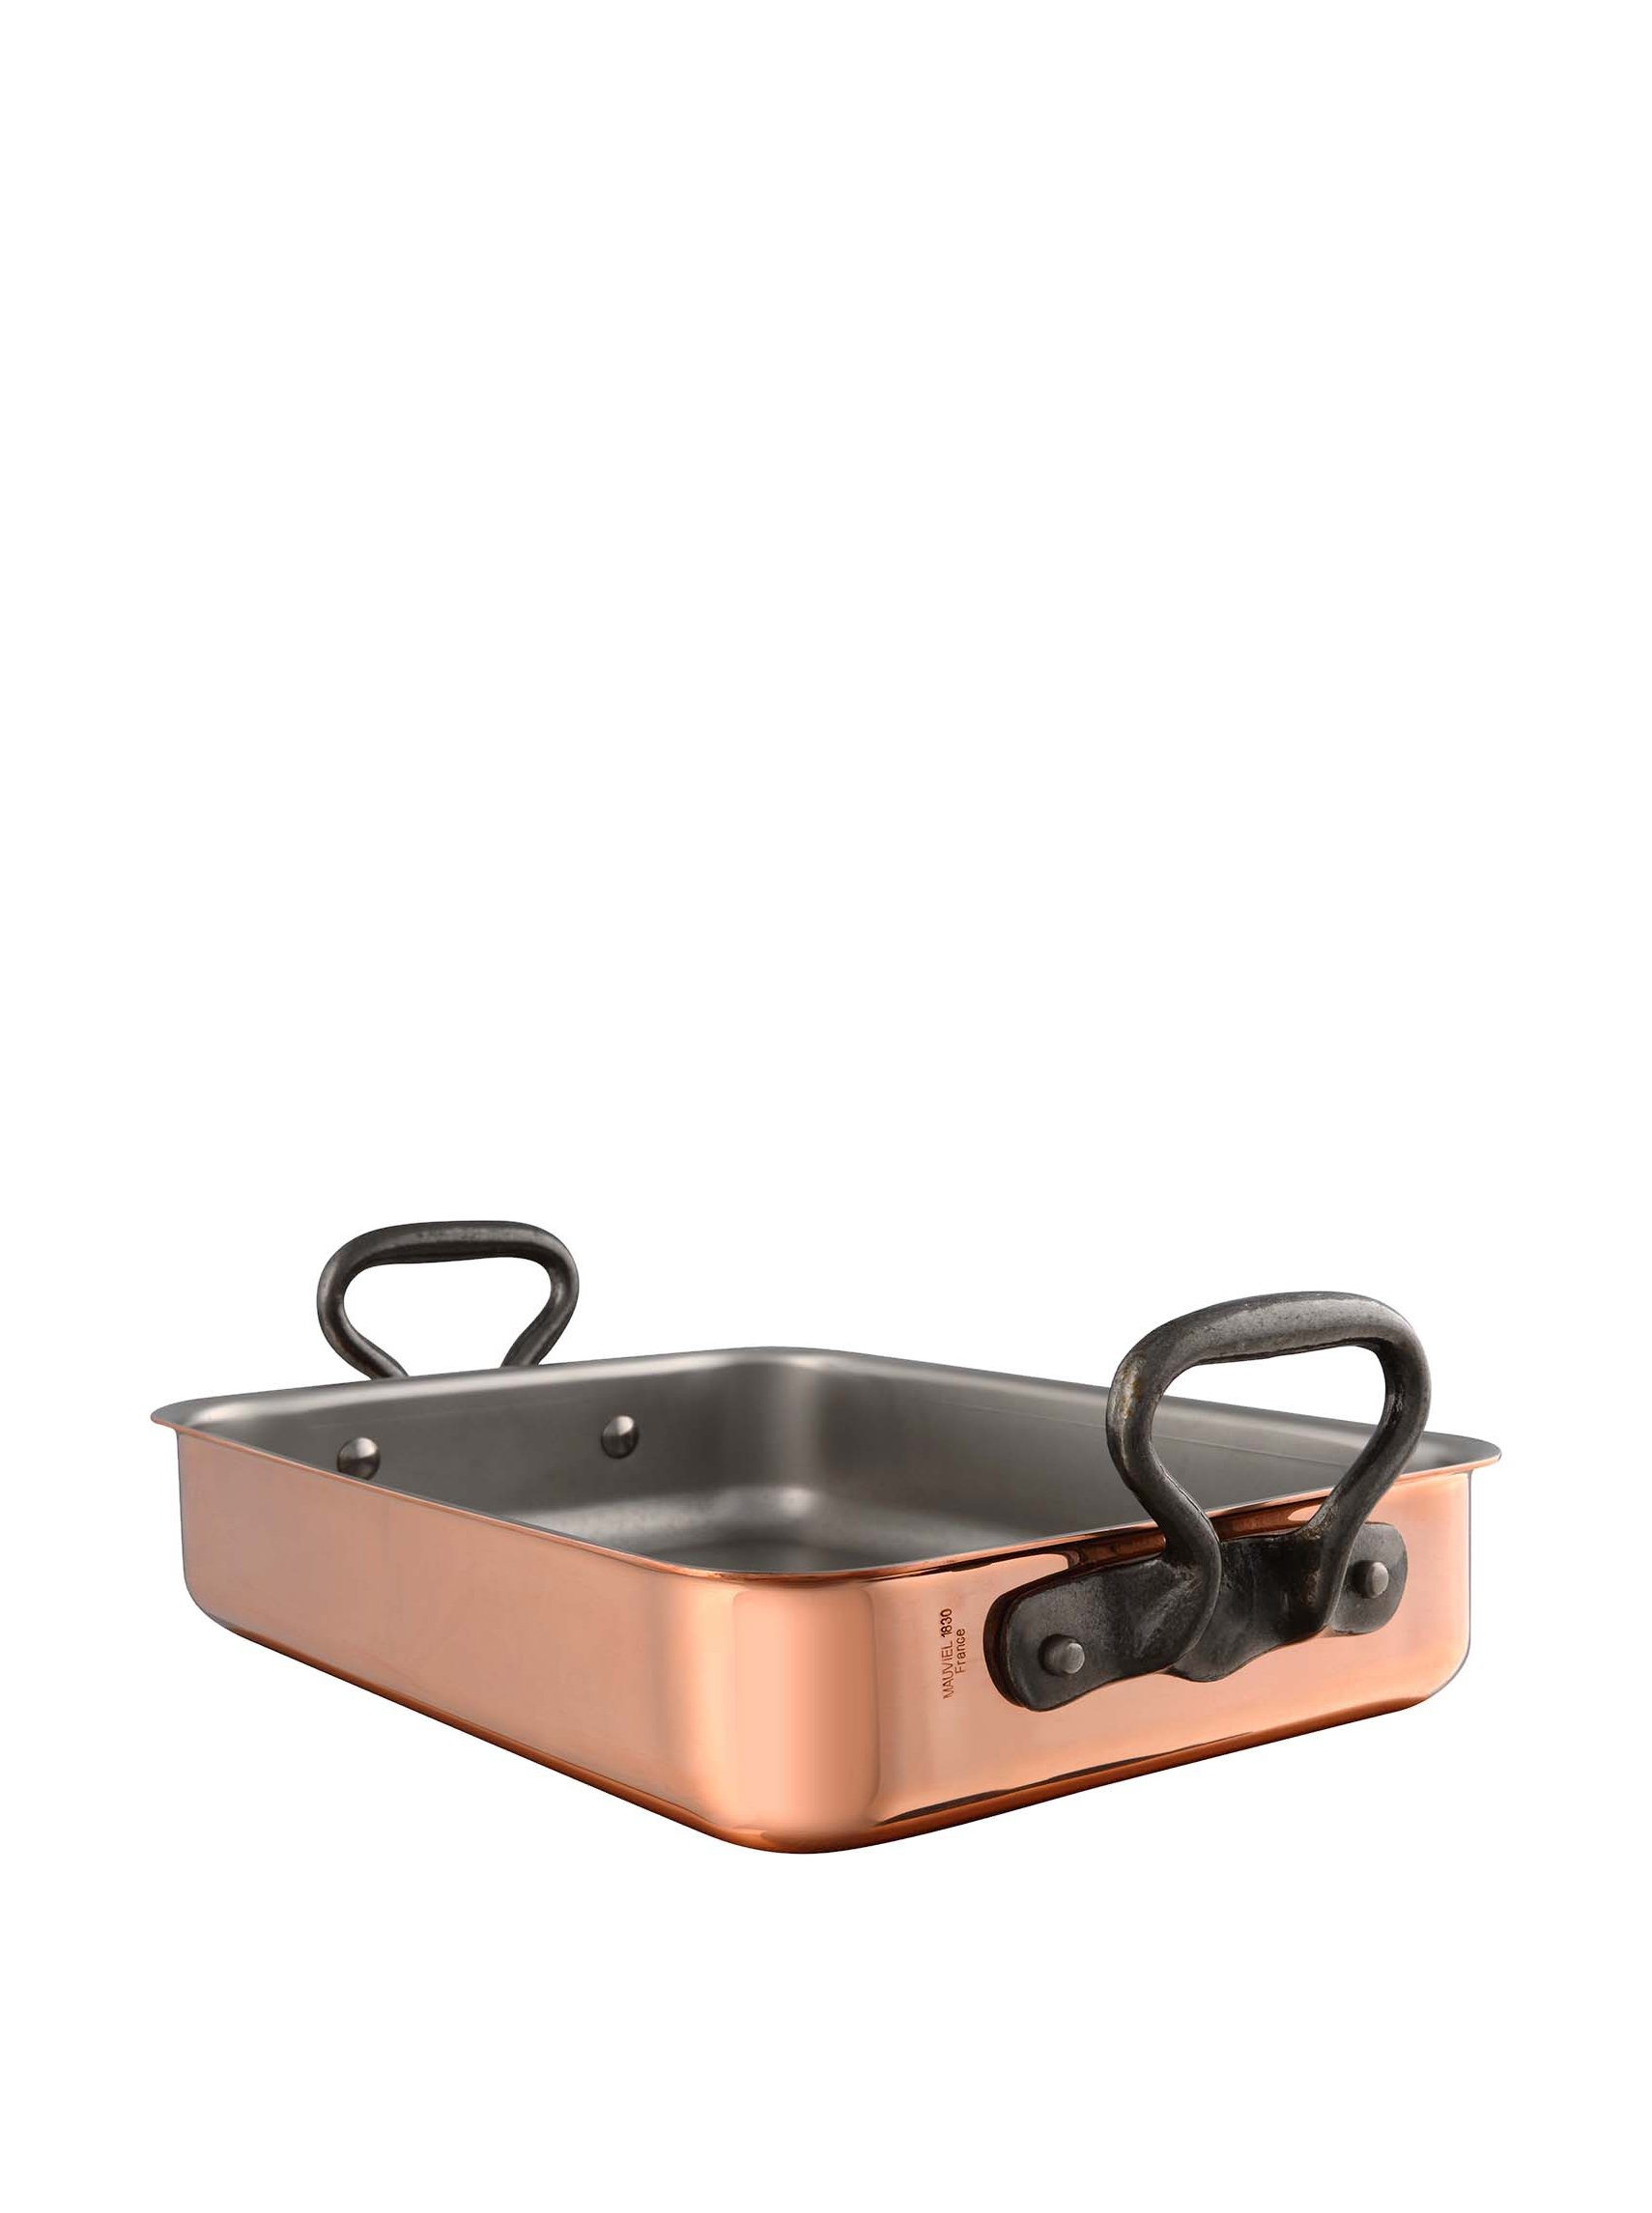 Mauviel M'150C Tri-Ply Roaster with Rack And Cast Iron Handles - Copper - 15.7 x 11.8''